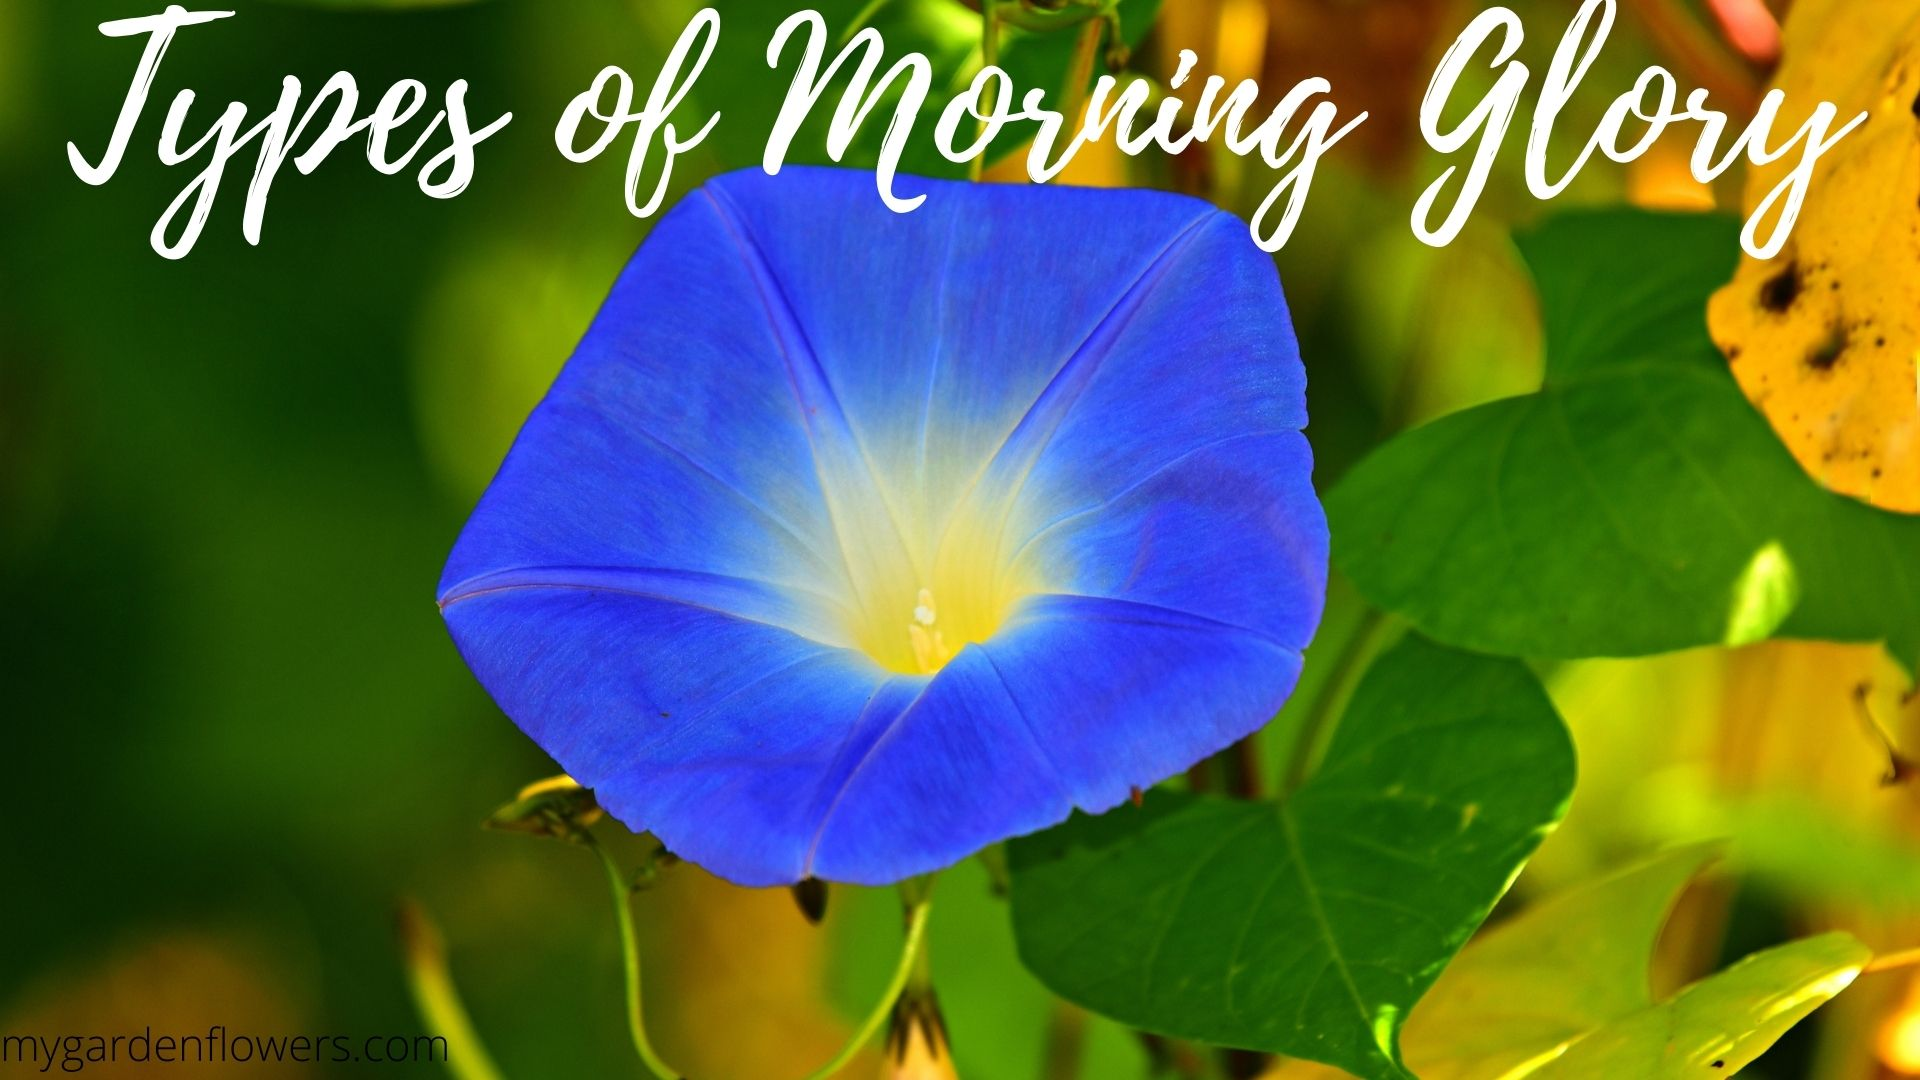 13 Types of Morning Glory